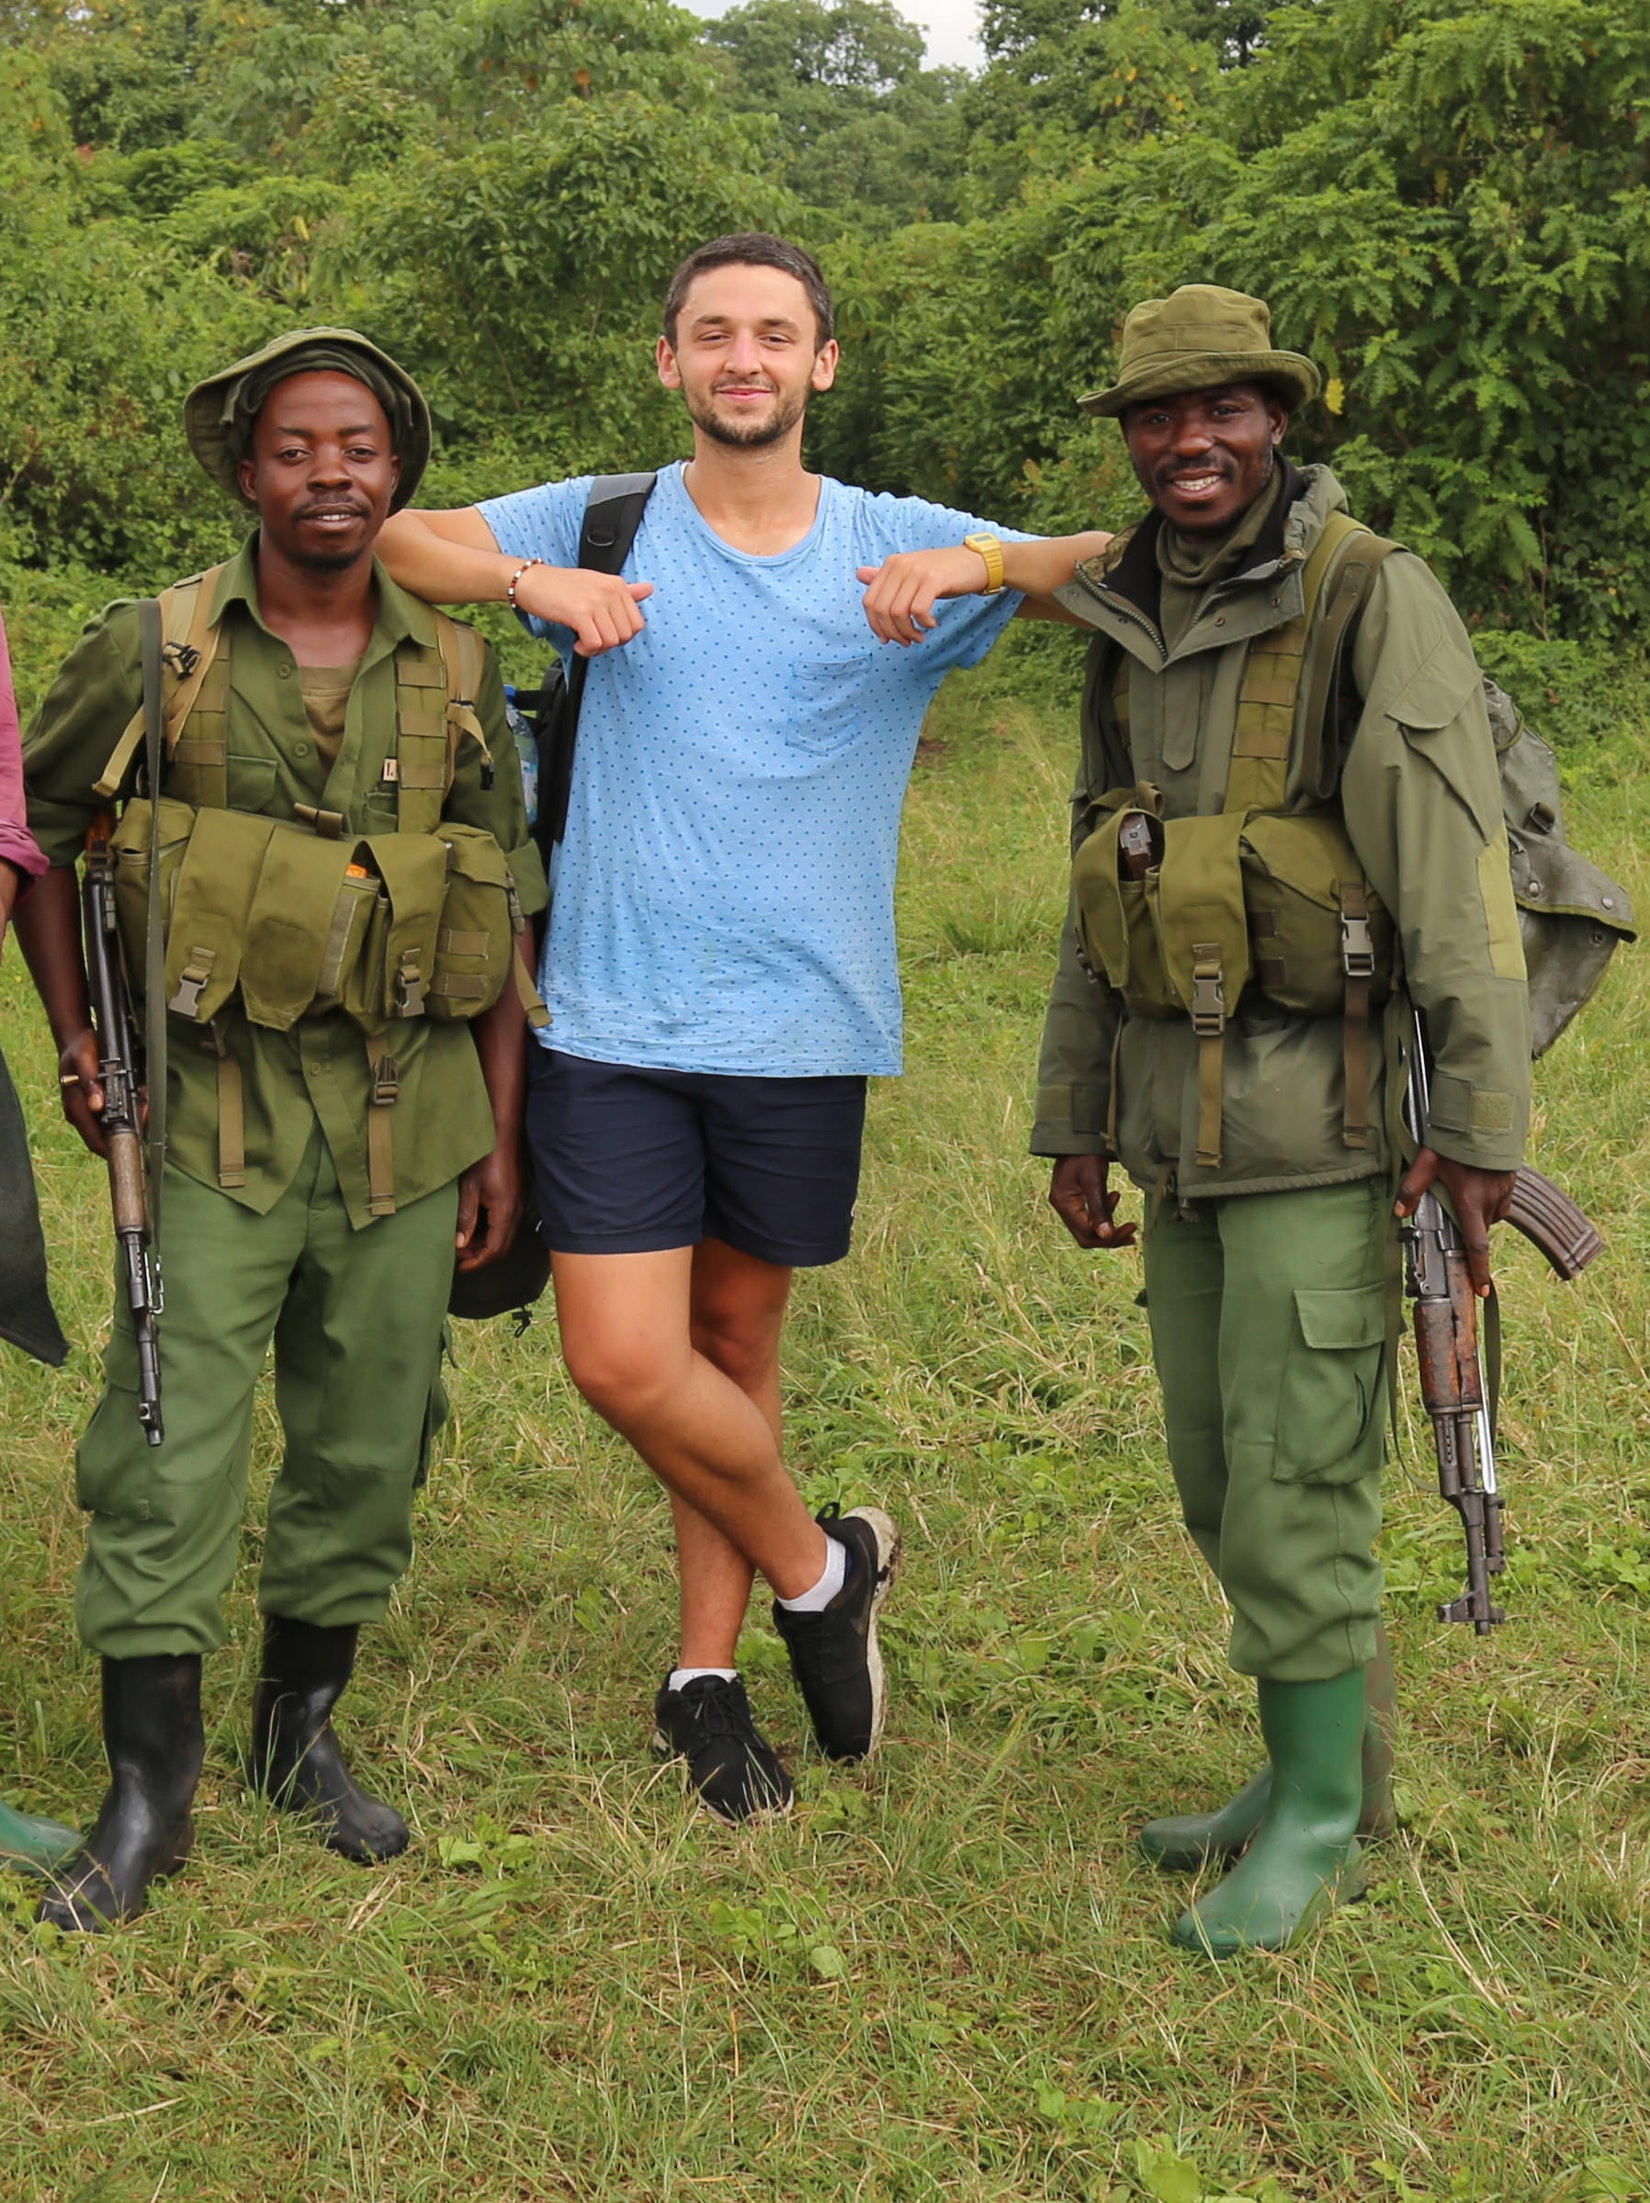 Daniel with some potential new friends in the Democratic Republic of the Congo